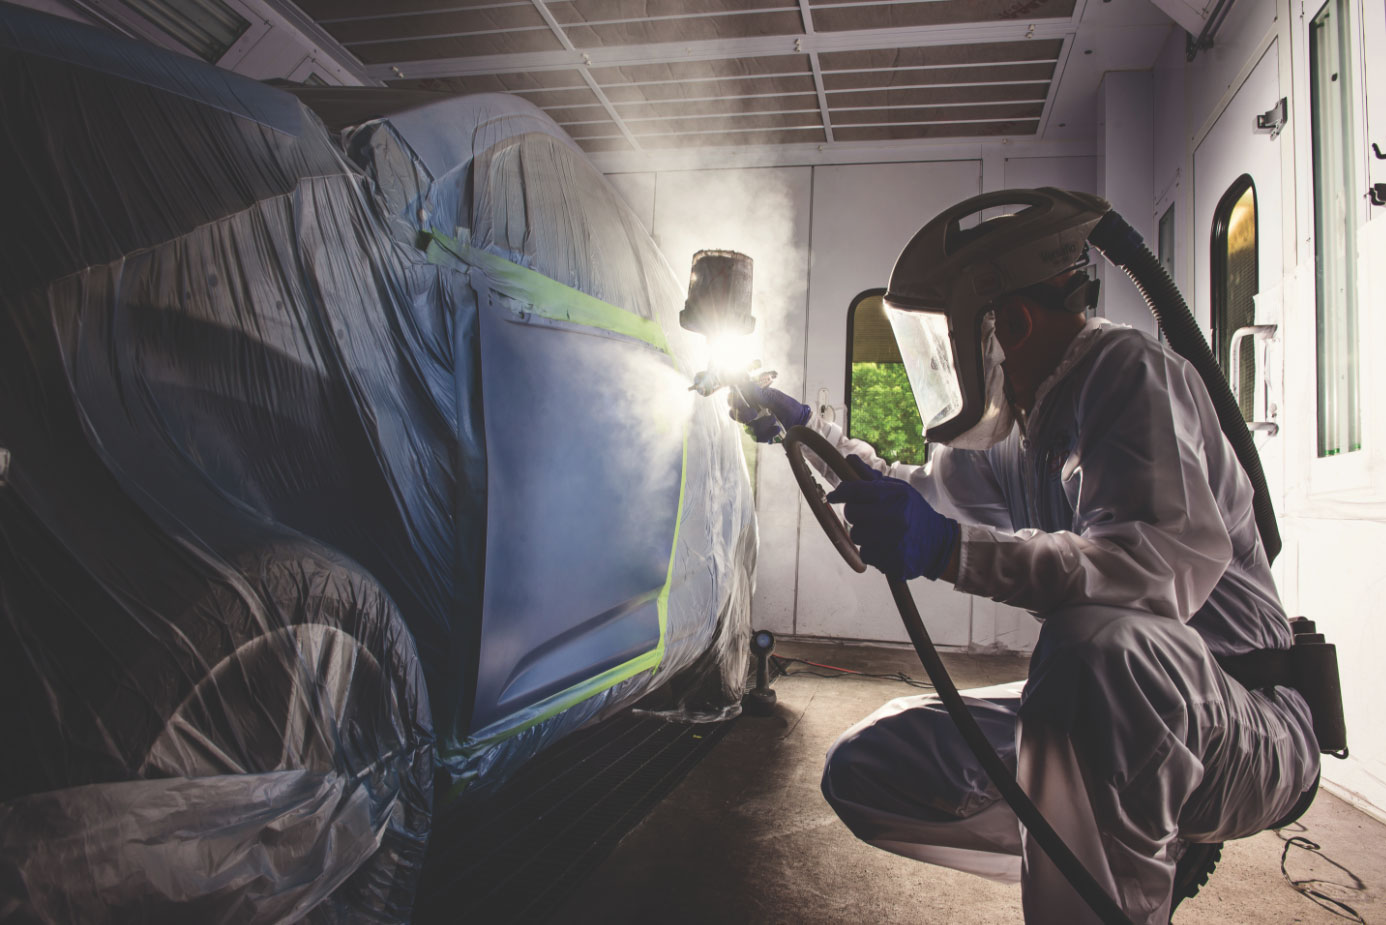 Automobile technican spraying vehicle in paint booth